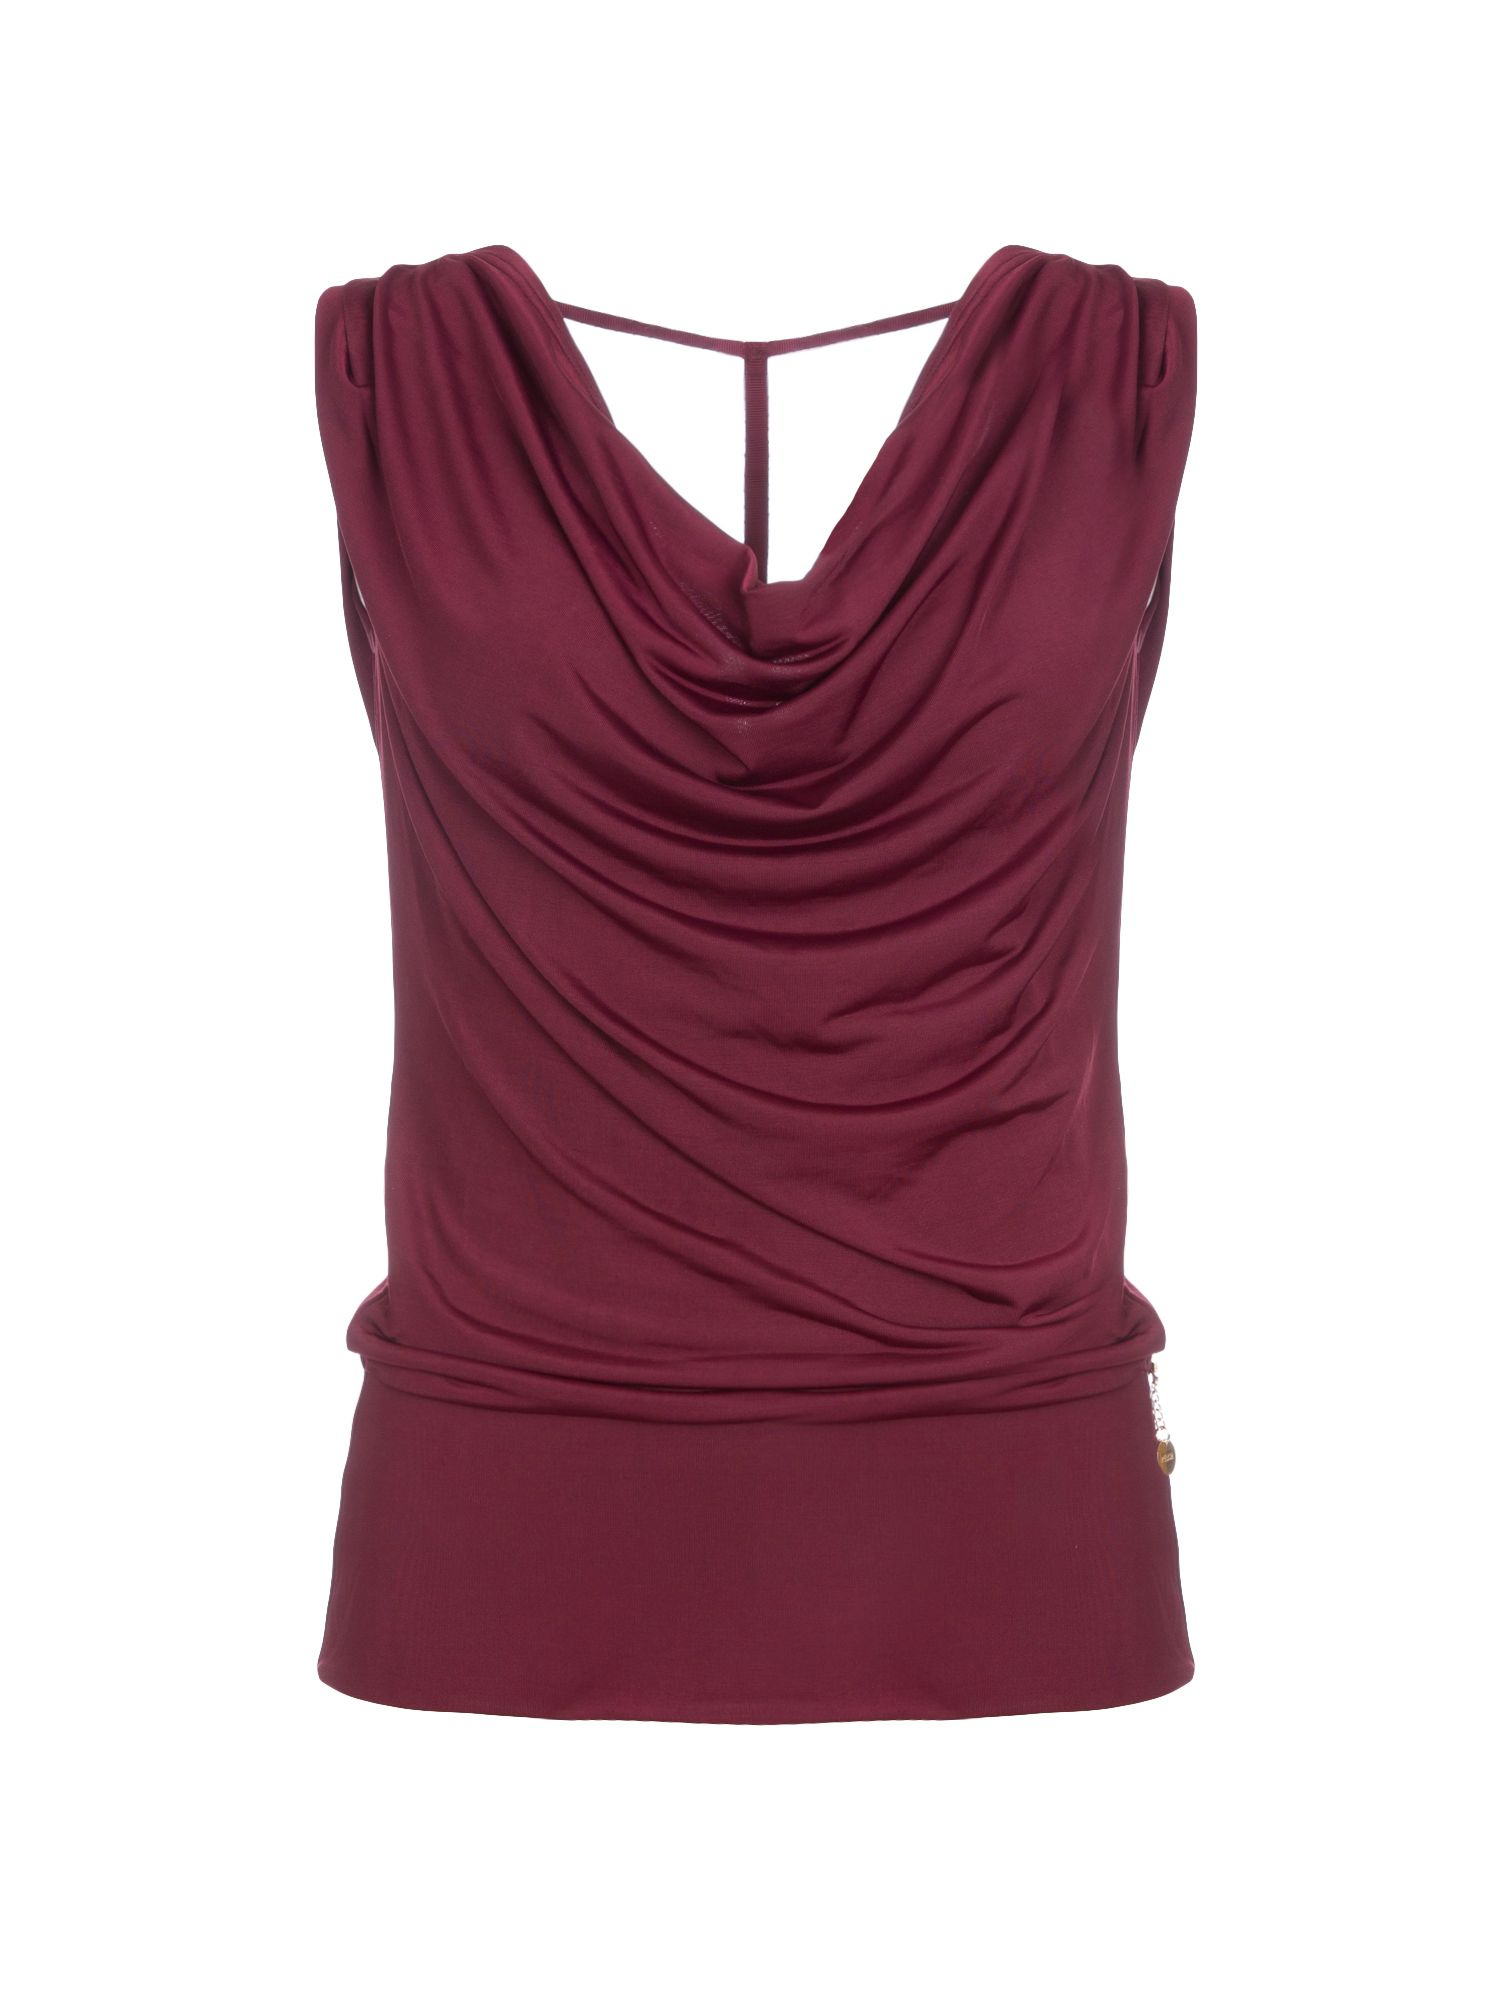 Relish Relish Cowl Neck Top, Red